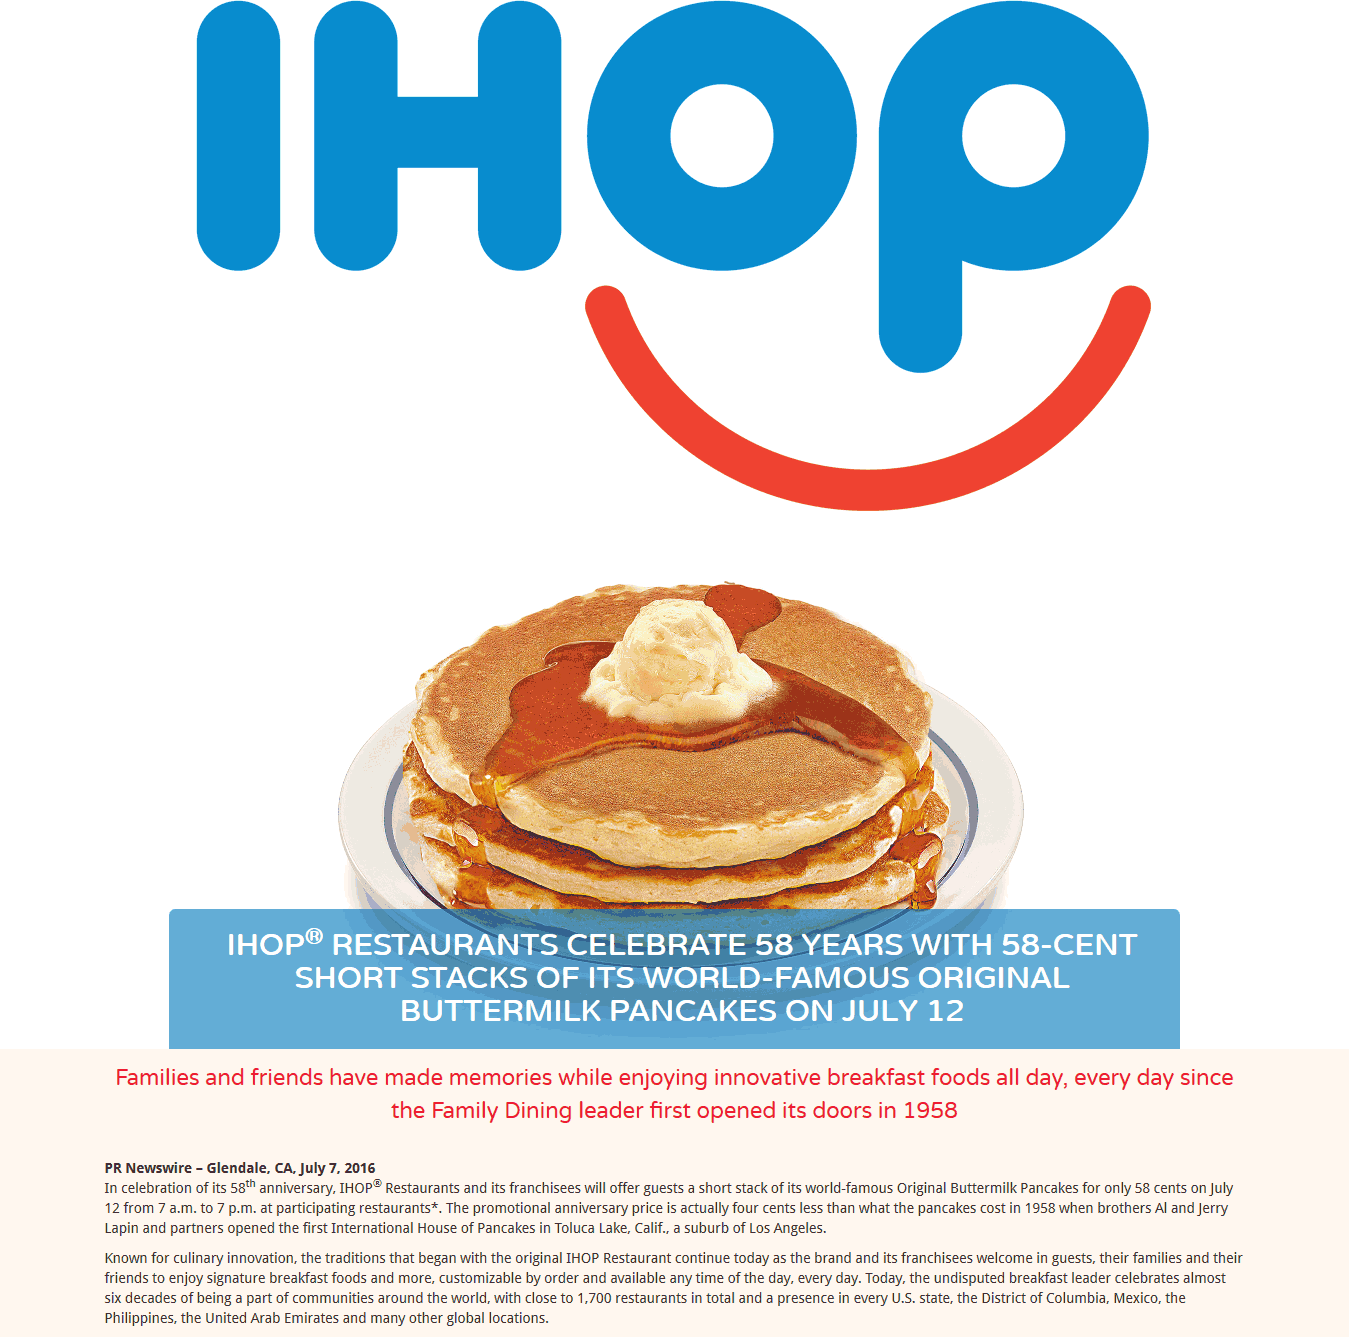 IHOP Coupon October 2016 58 cent pancakes Tuesday at IHOP